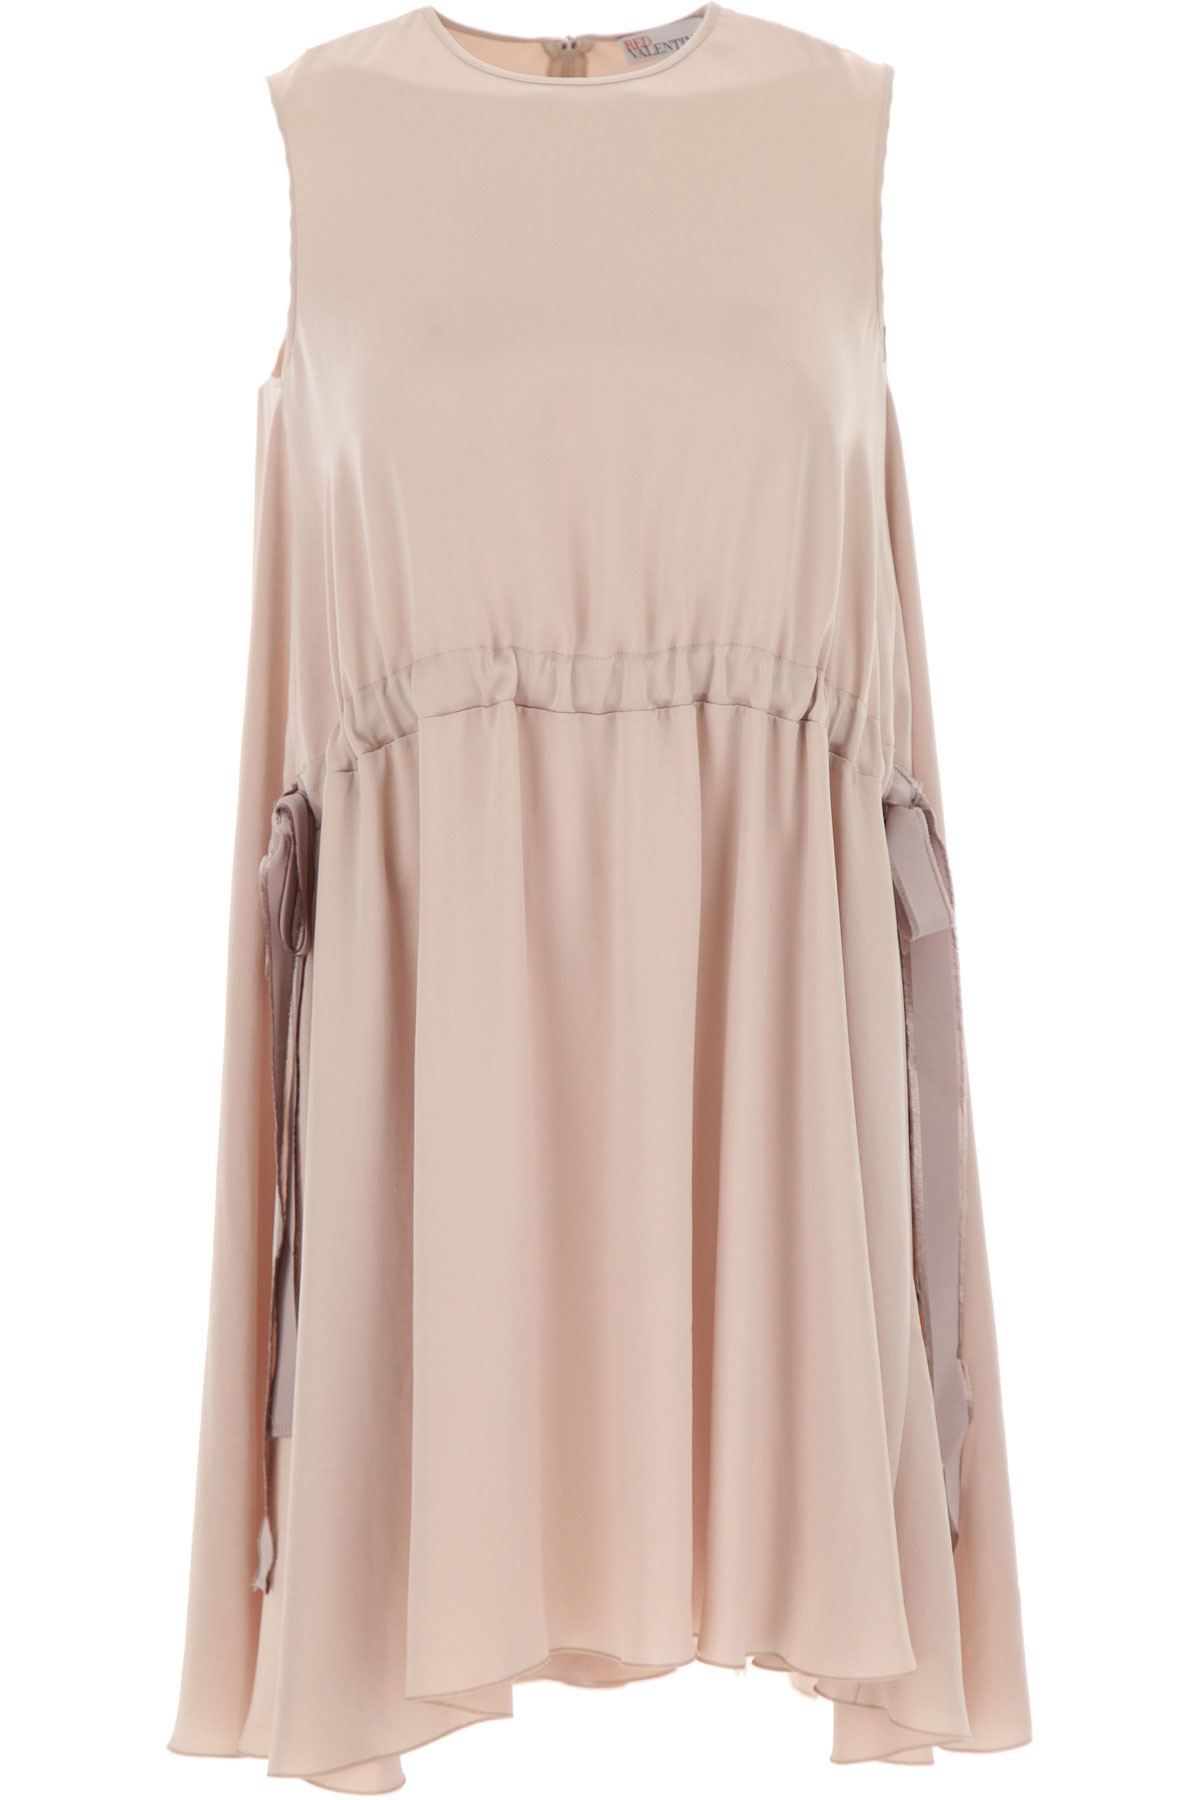 RED Valentino Dress for Women, Evening Cocktail Party On Sale, Angel Skin, polyestere, 2019, 2 4 6